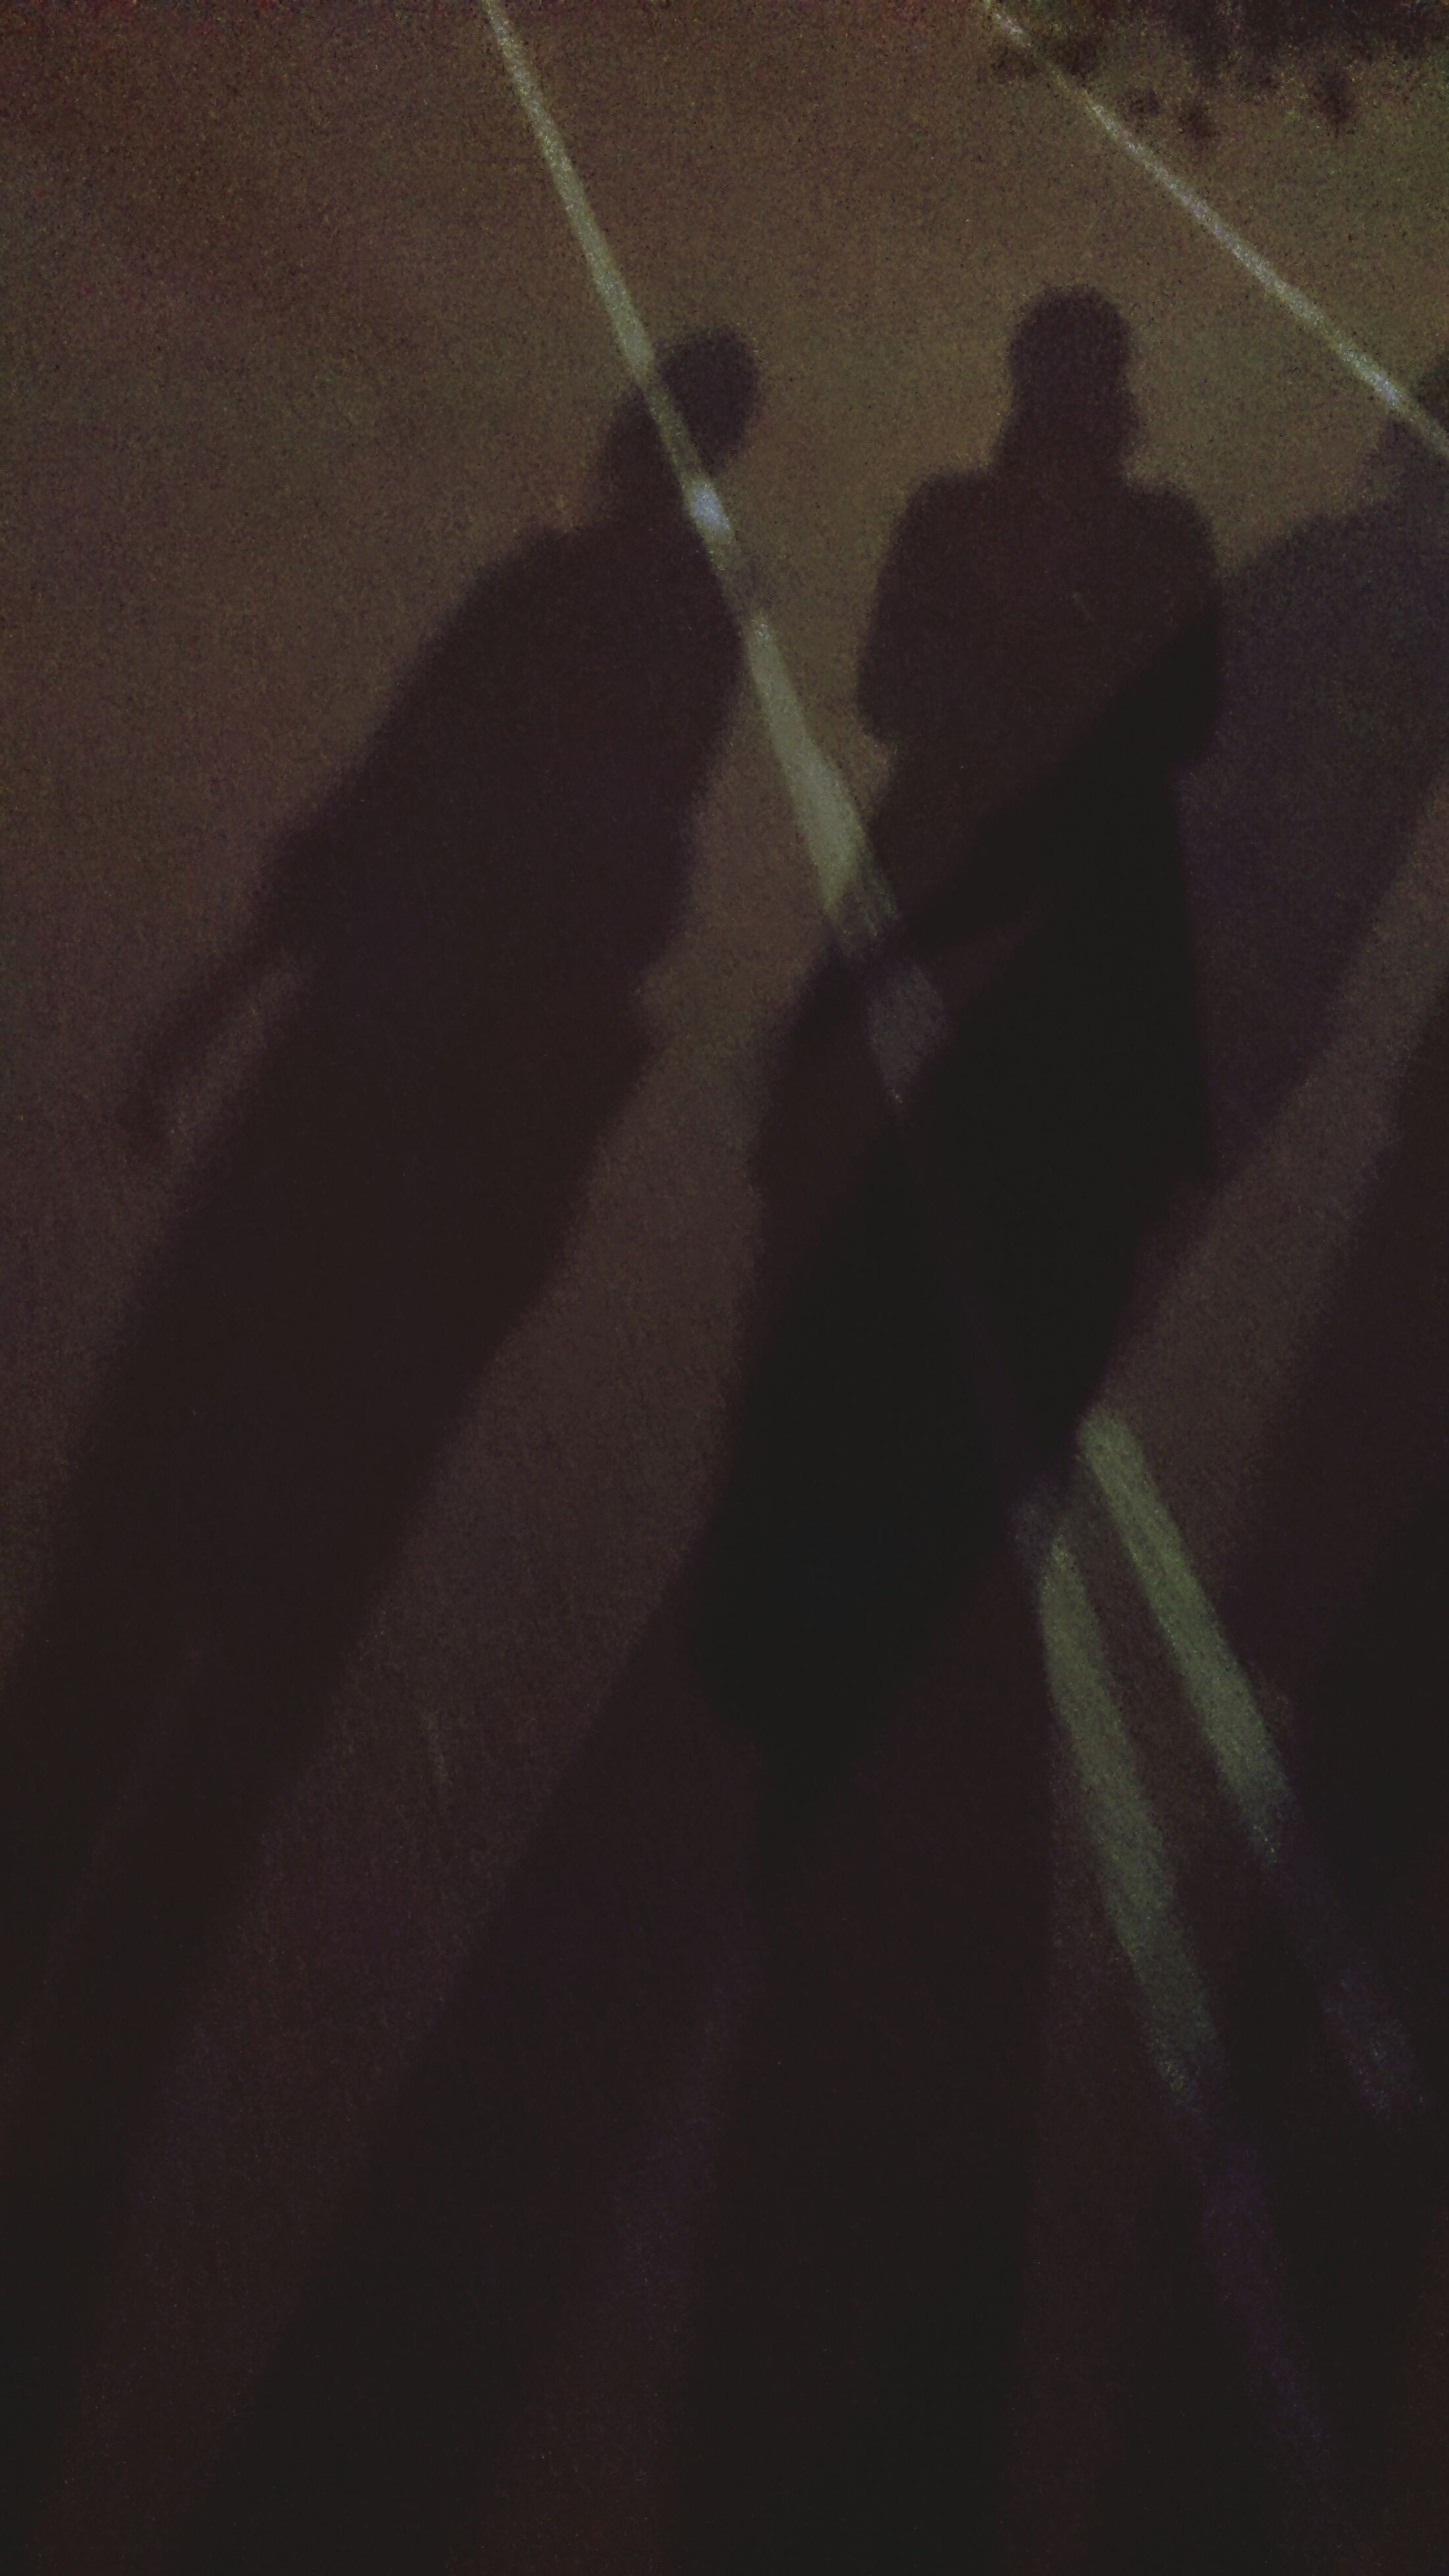 shadow, lifestyles, silhouette, high angle view, men, street, sunlight, leisure activity, focus on shadow, night, unrecognizable person, transportation, outdoors, road, person, walking, outline